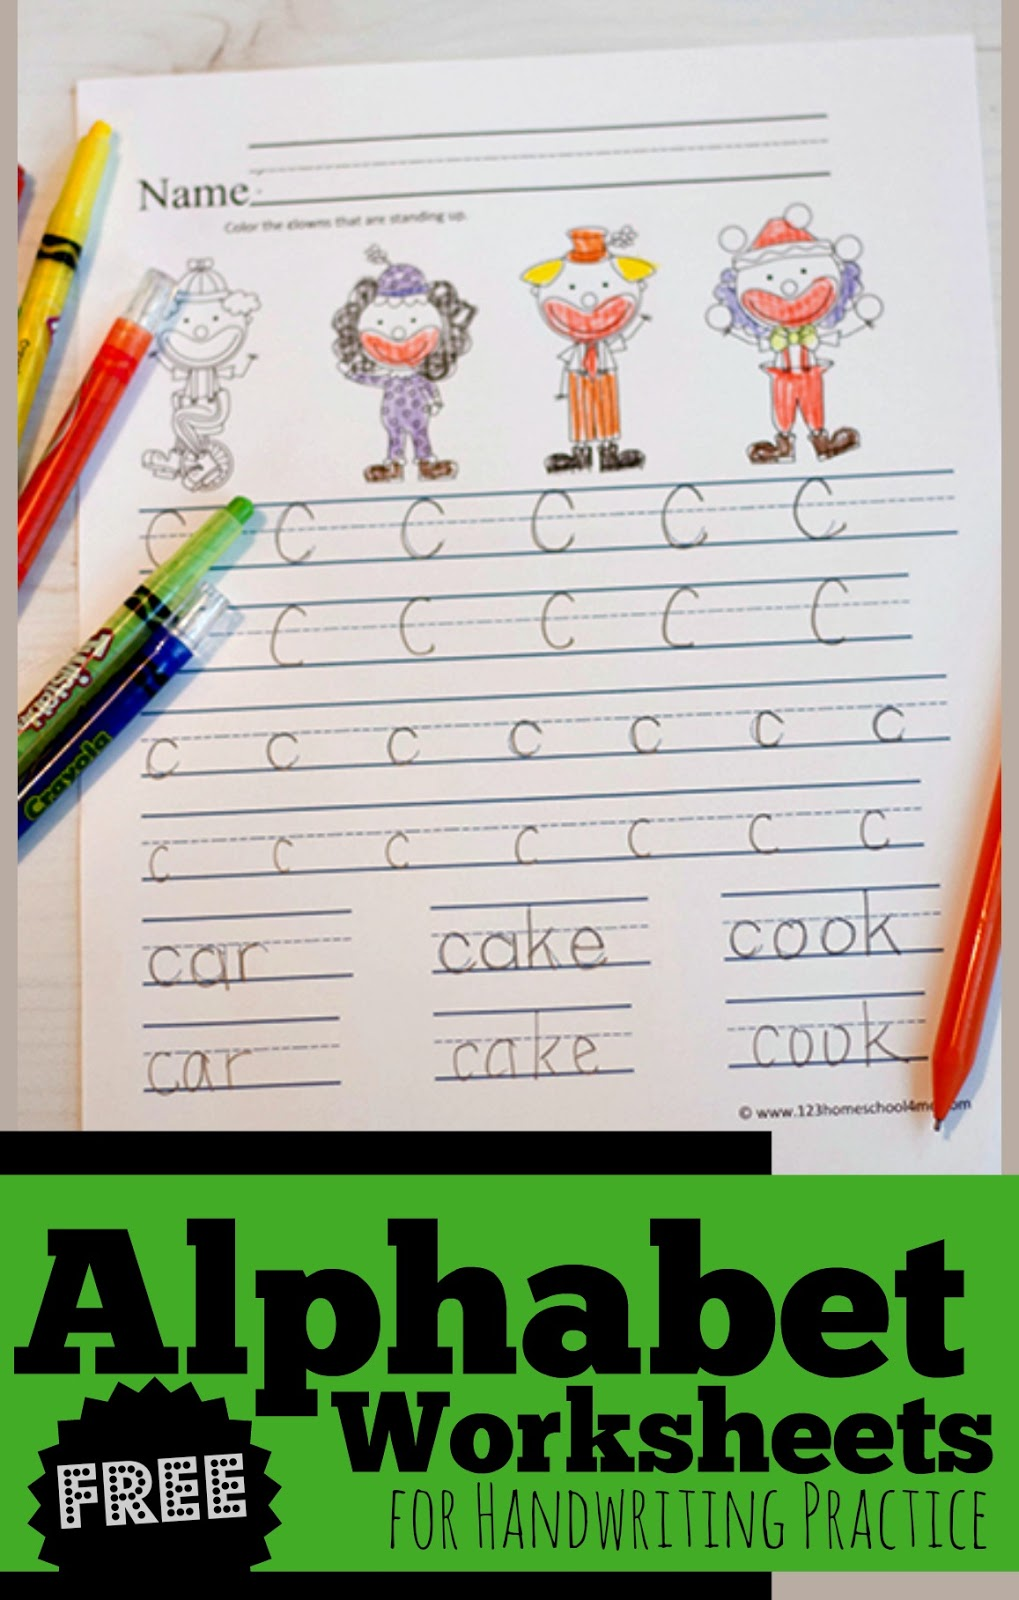 FREE Alphabet Worksheets for Handwriting Practice | 123 ...